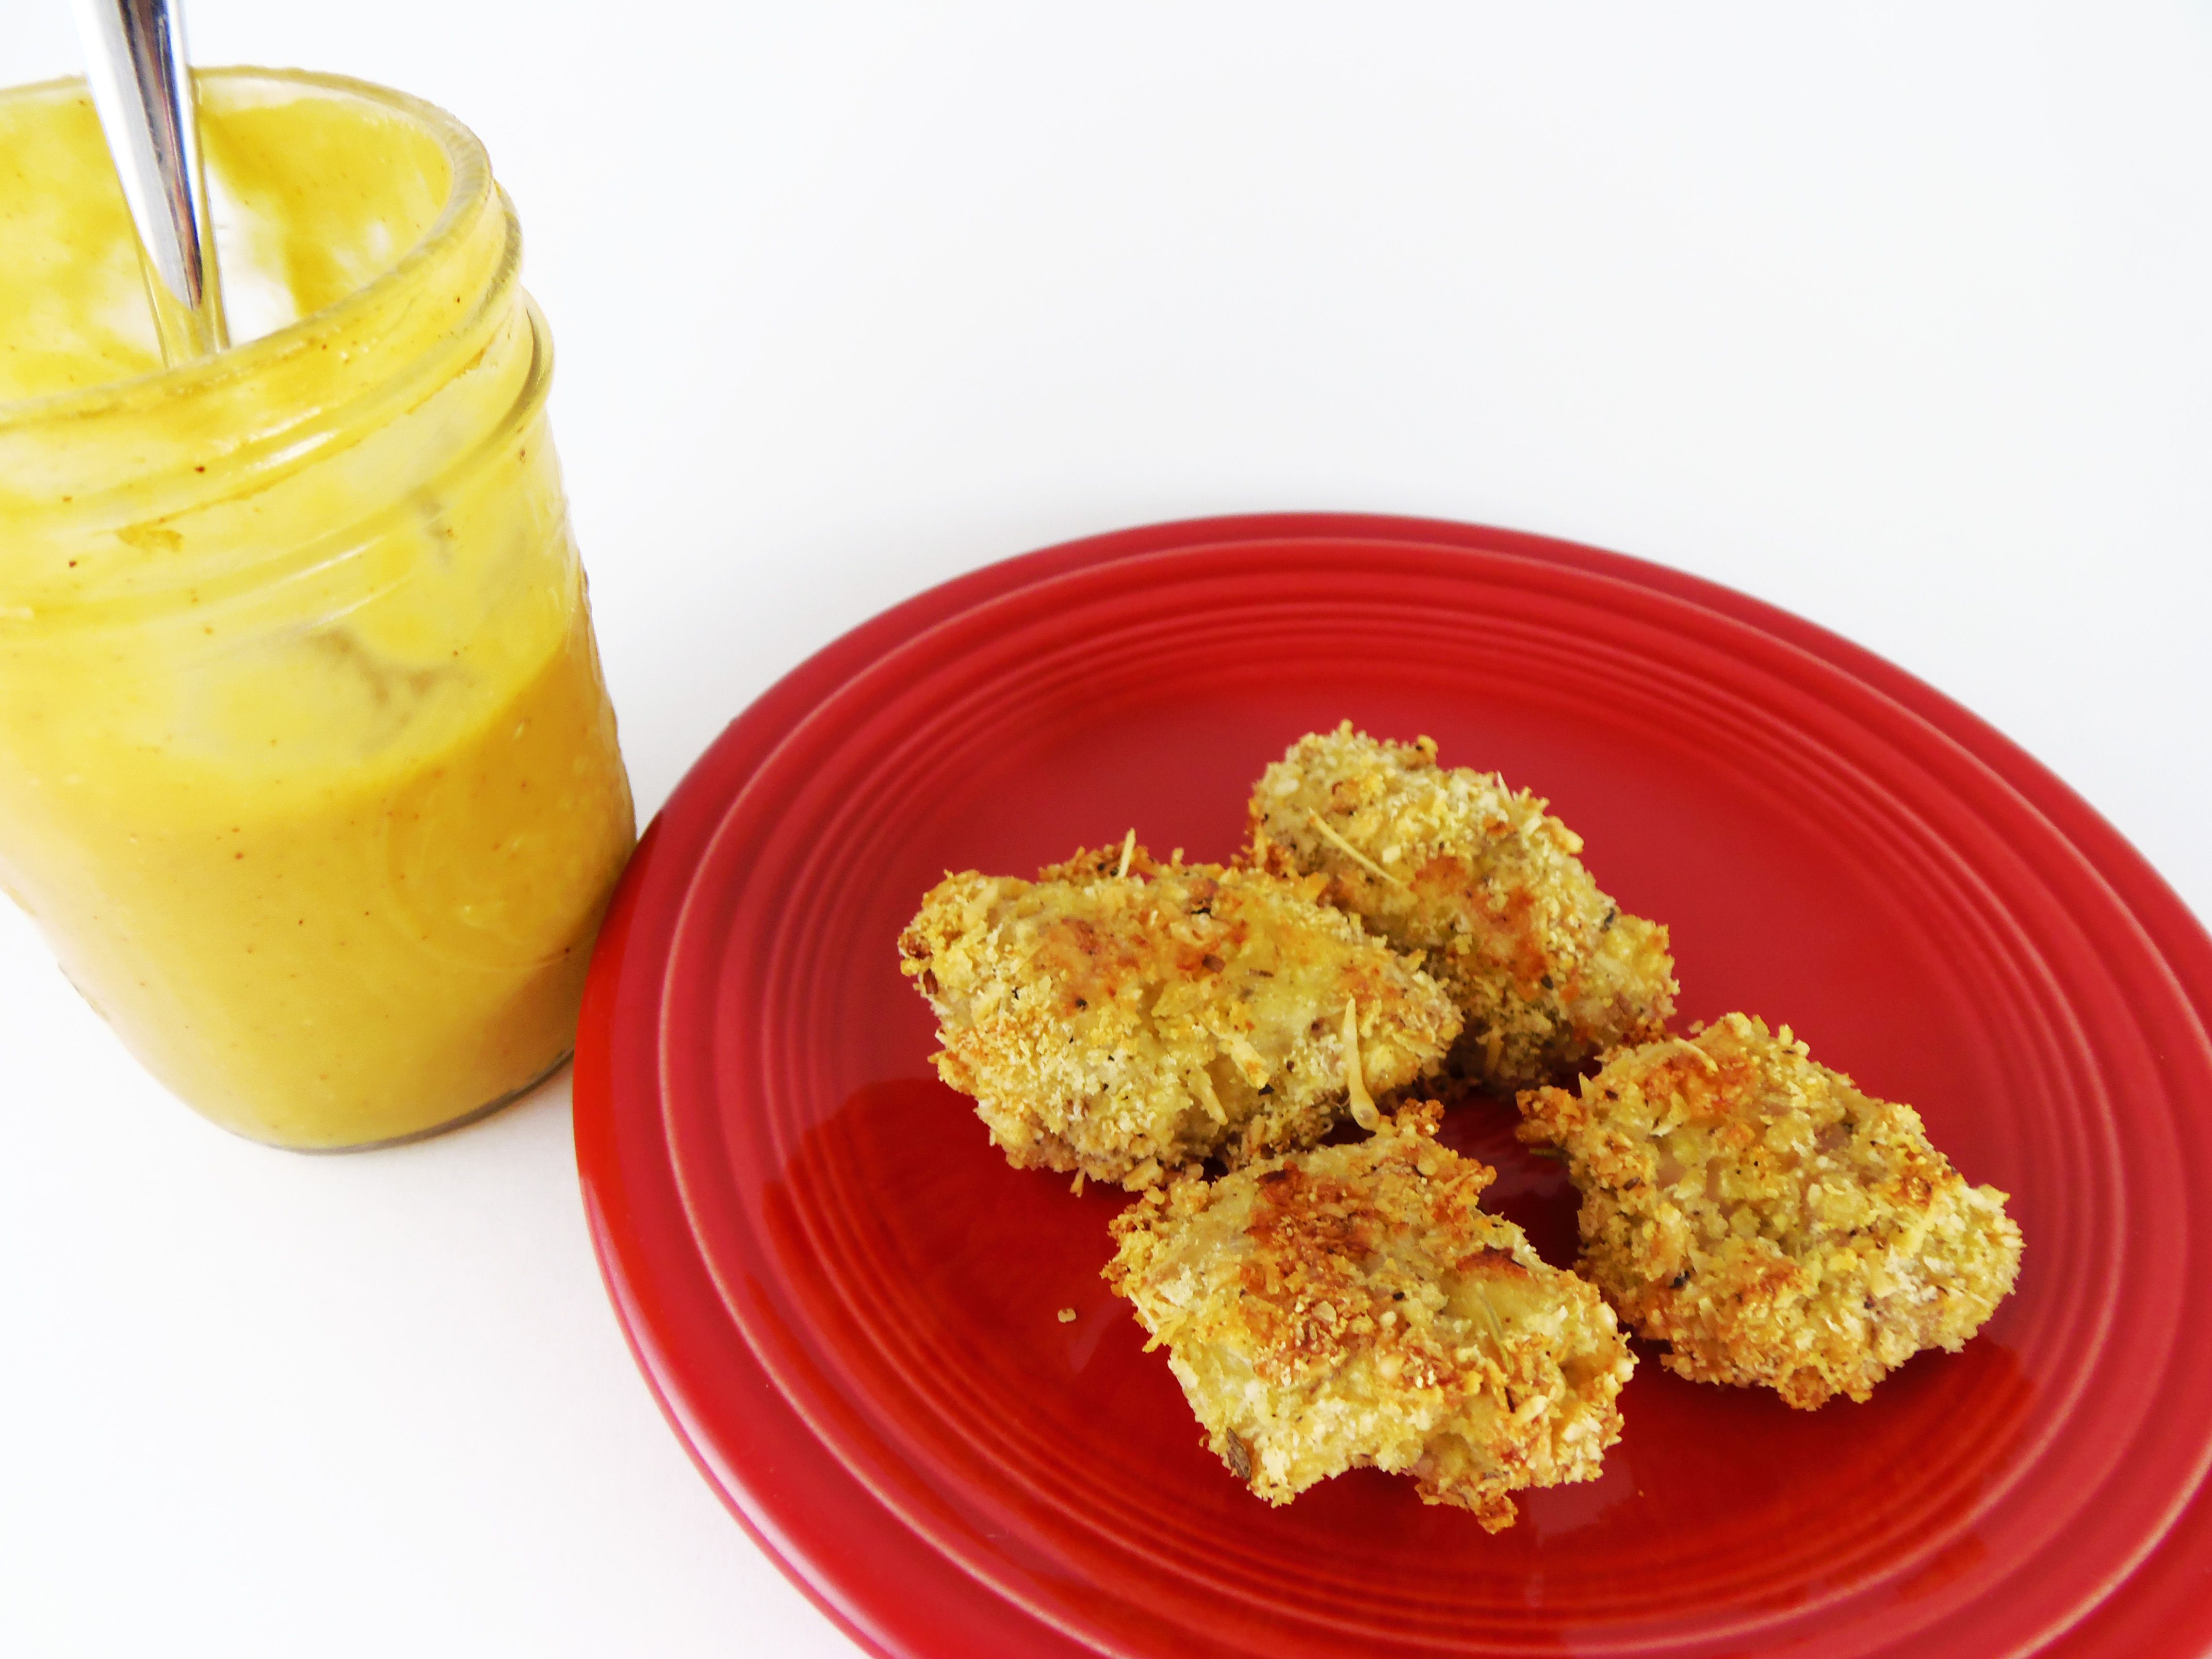 How to Make Chicken Nuggets at Home From Scratch